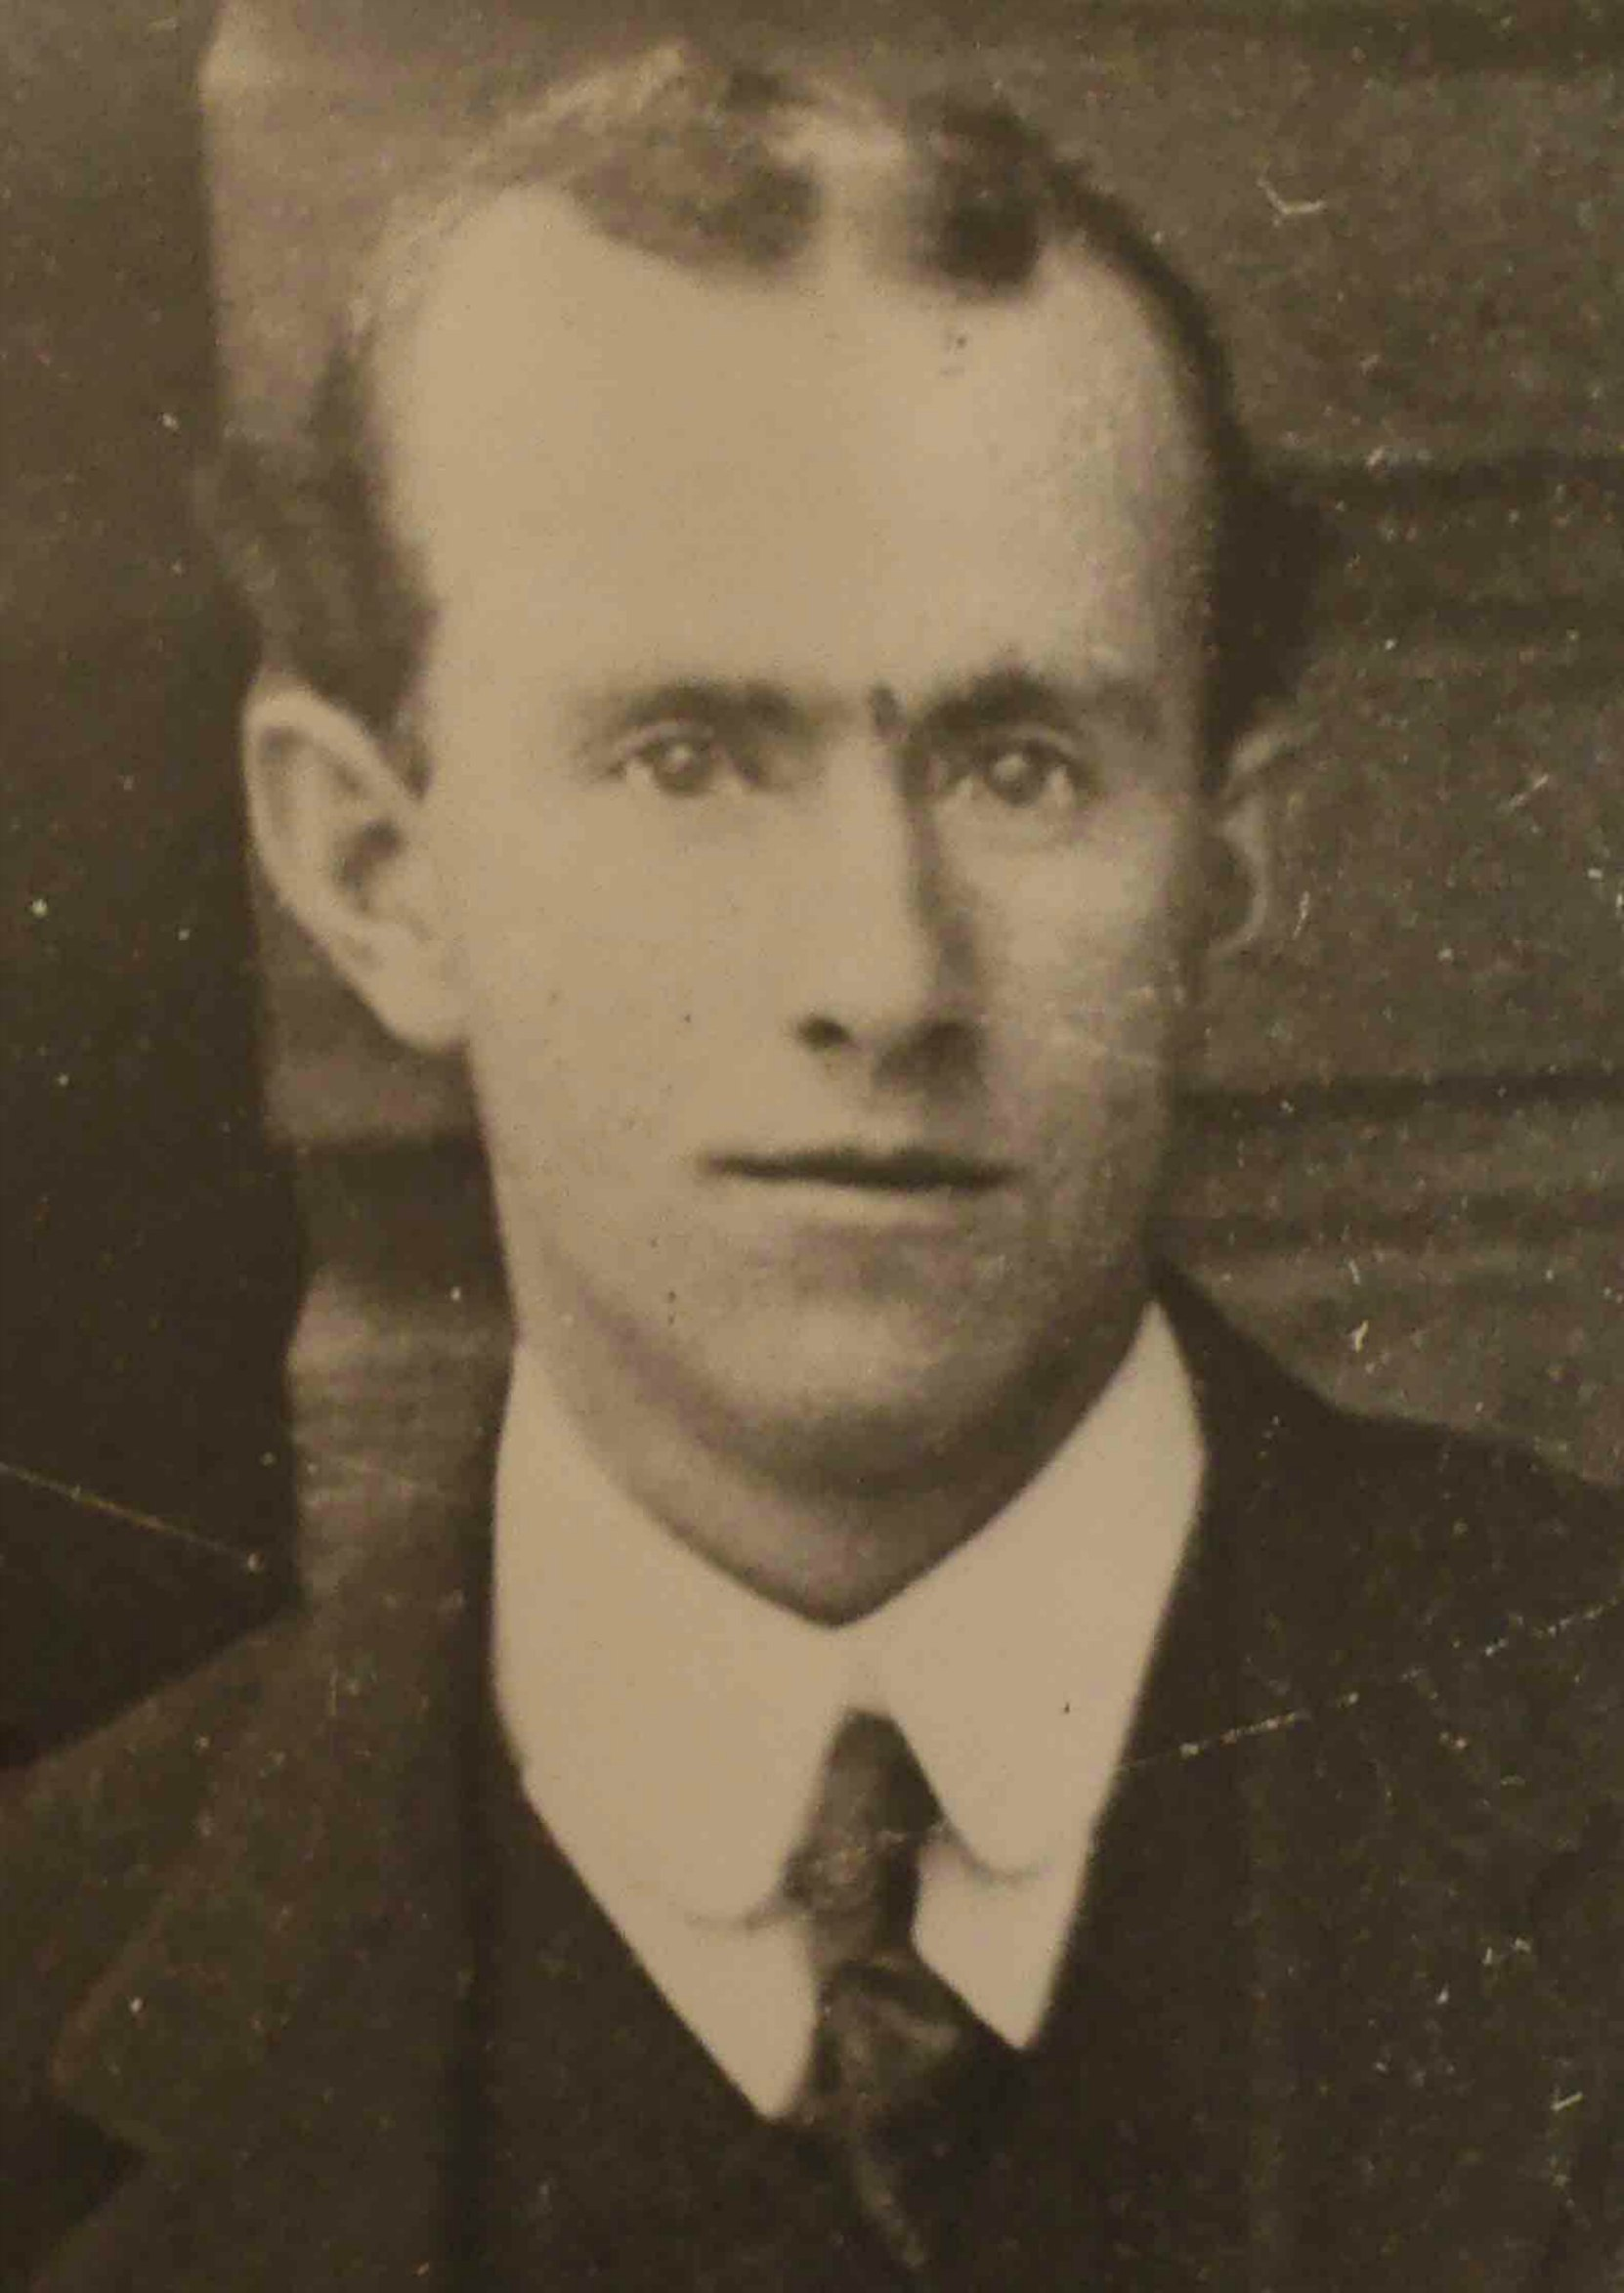 Matthias Kirkwood MacMillan ( -1953), Worshipful Master of Temple Lodge, No.33 in 1916